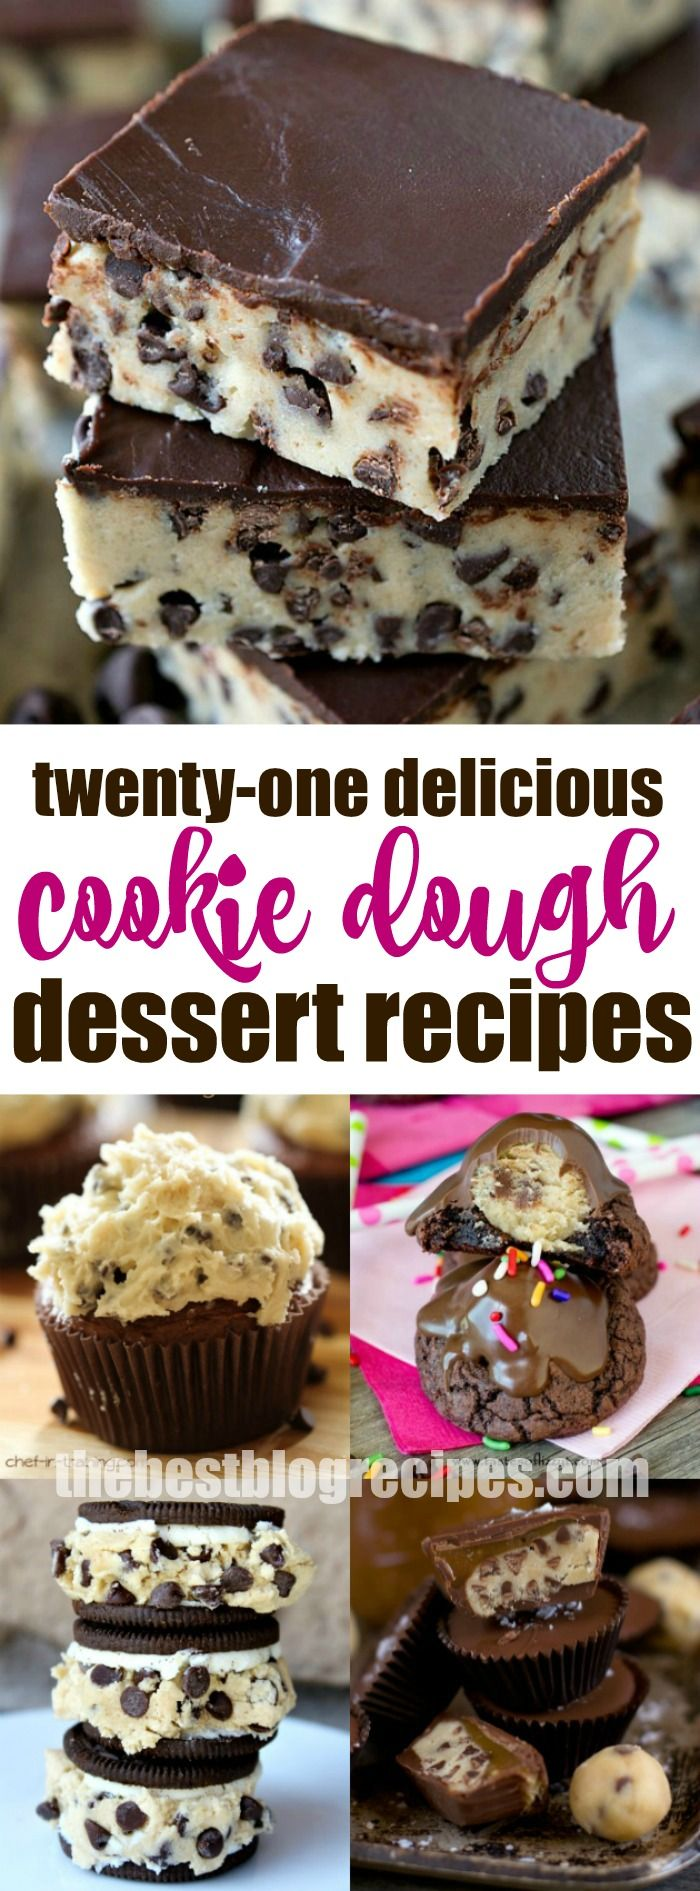 21 Cookie Dough Recipes to make if you're OBSESSED with Cookie Dough -- from The Best Blog Recipes